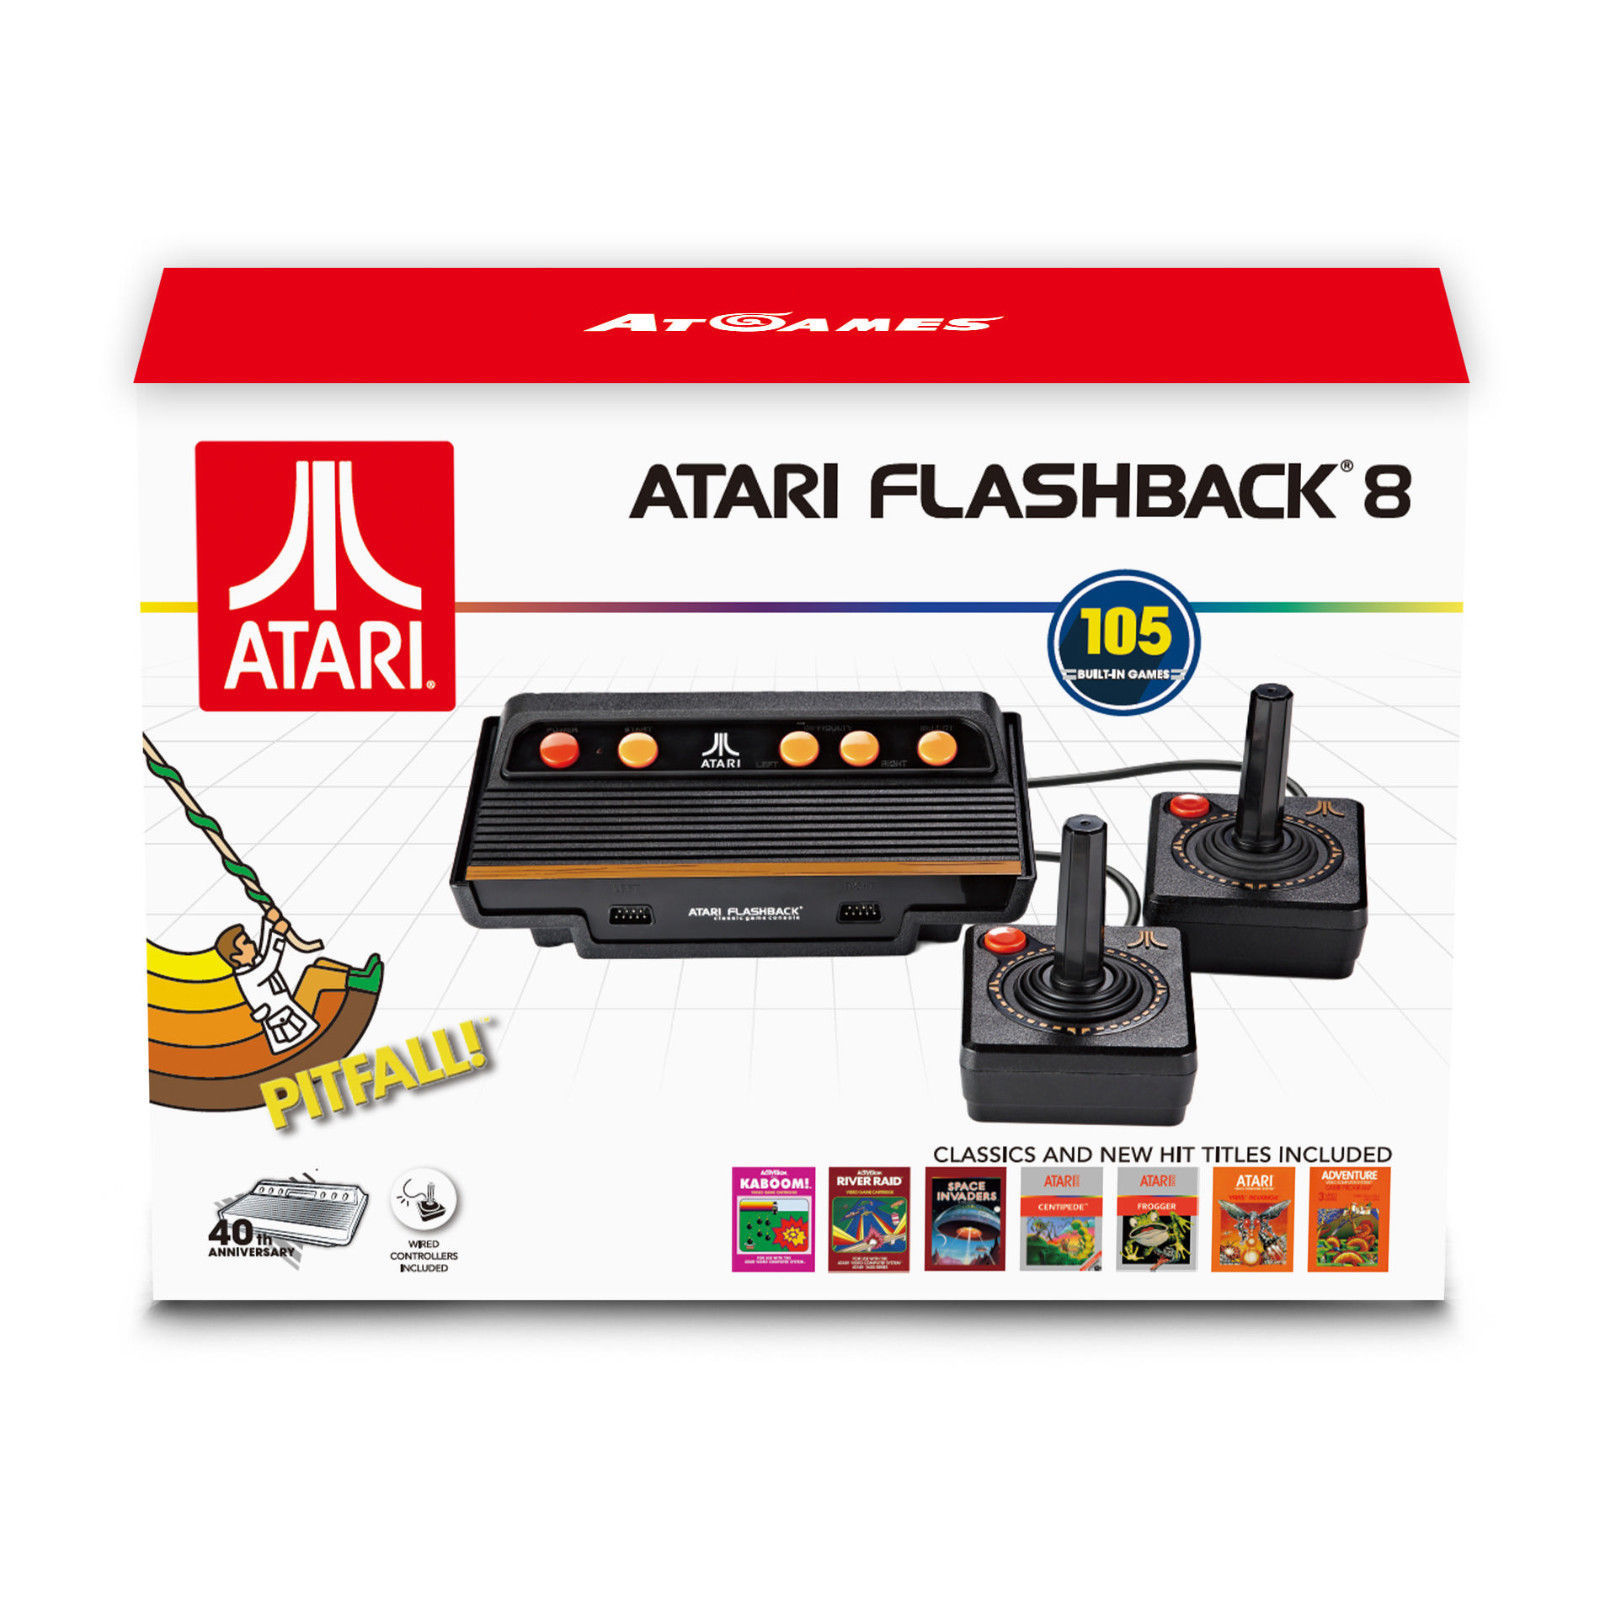 New atari flashback 8 classic game console 105 built in - Atari flashback classic game console game list ...